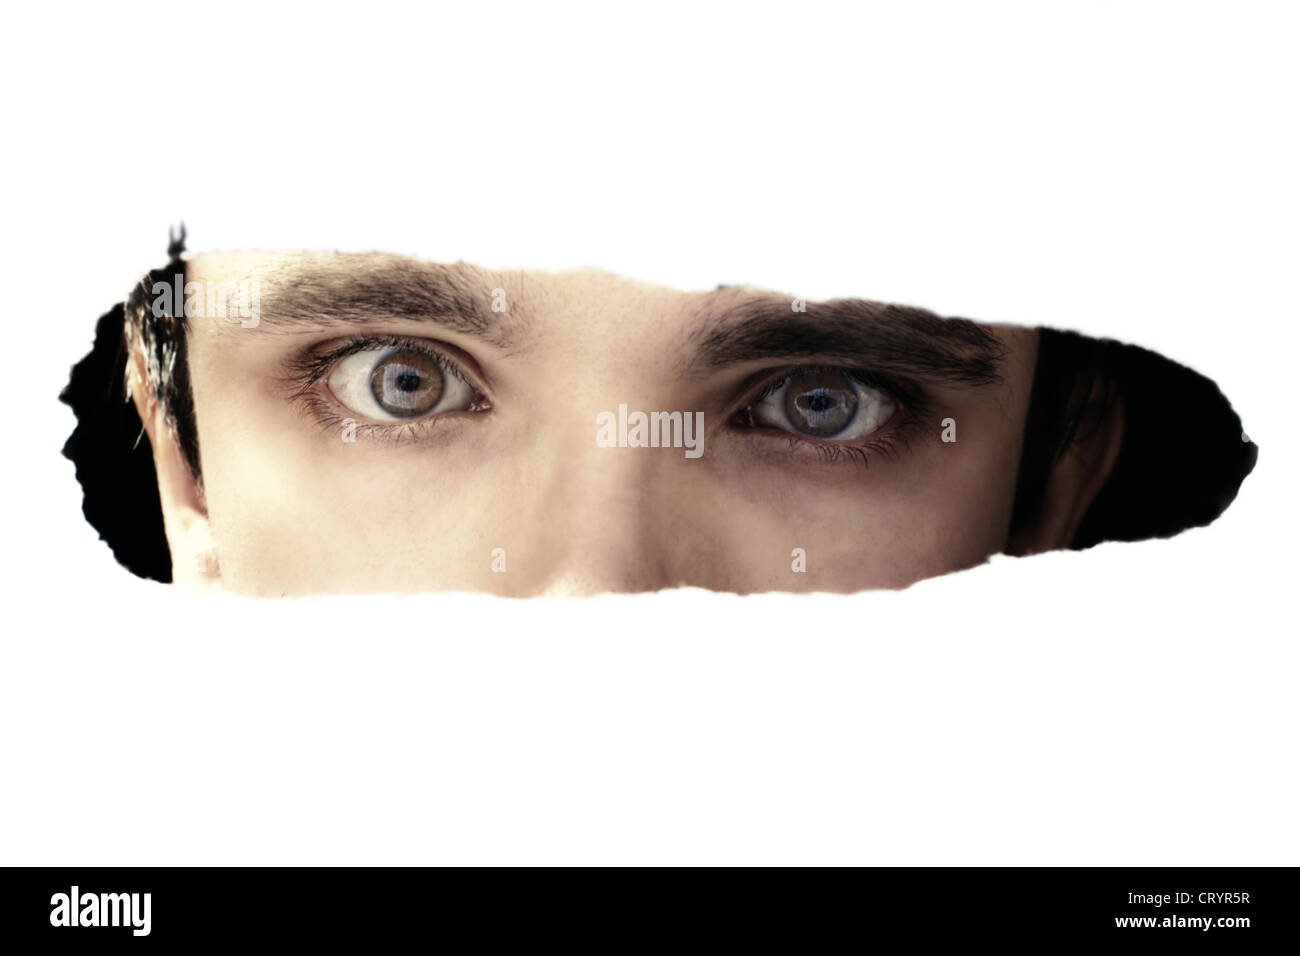 Scary Eyes Of A Man Spying Through Hole